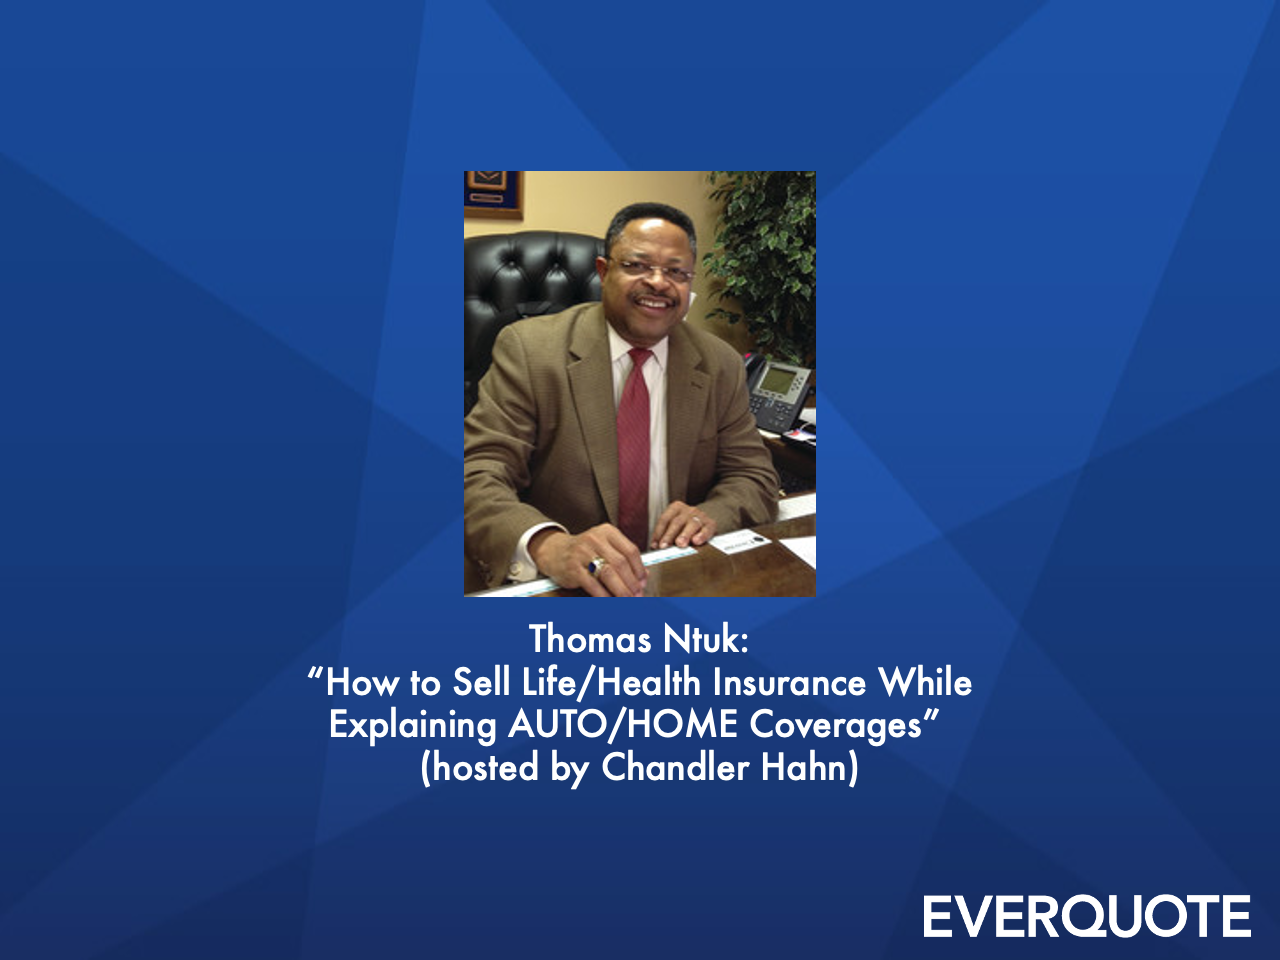 How to Sell Life/Health Insurance While Explaining AUTO/HOME Coverages with Thomas Ntuk (hosted by Chandler Hahn)